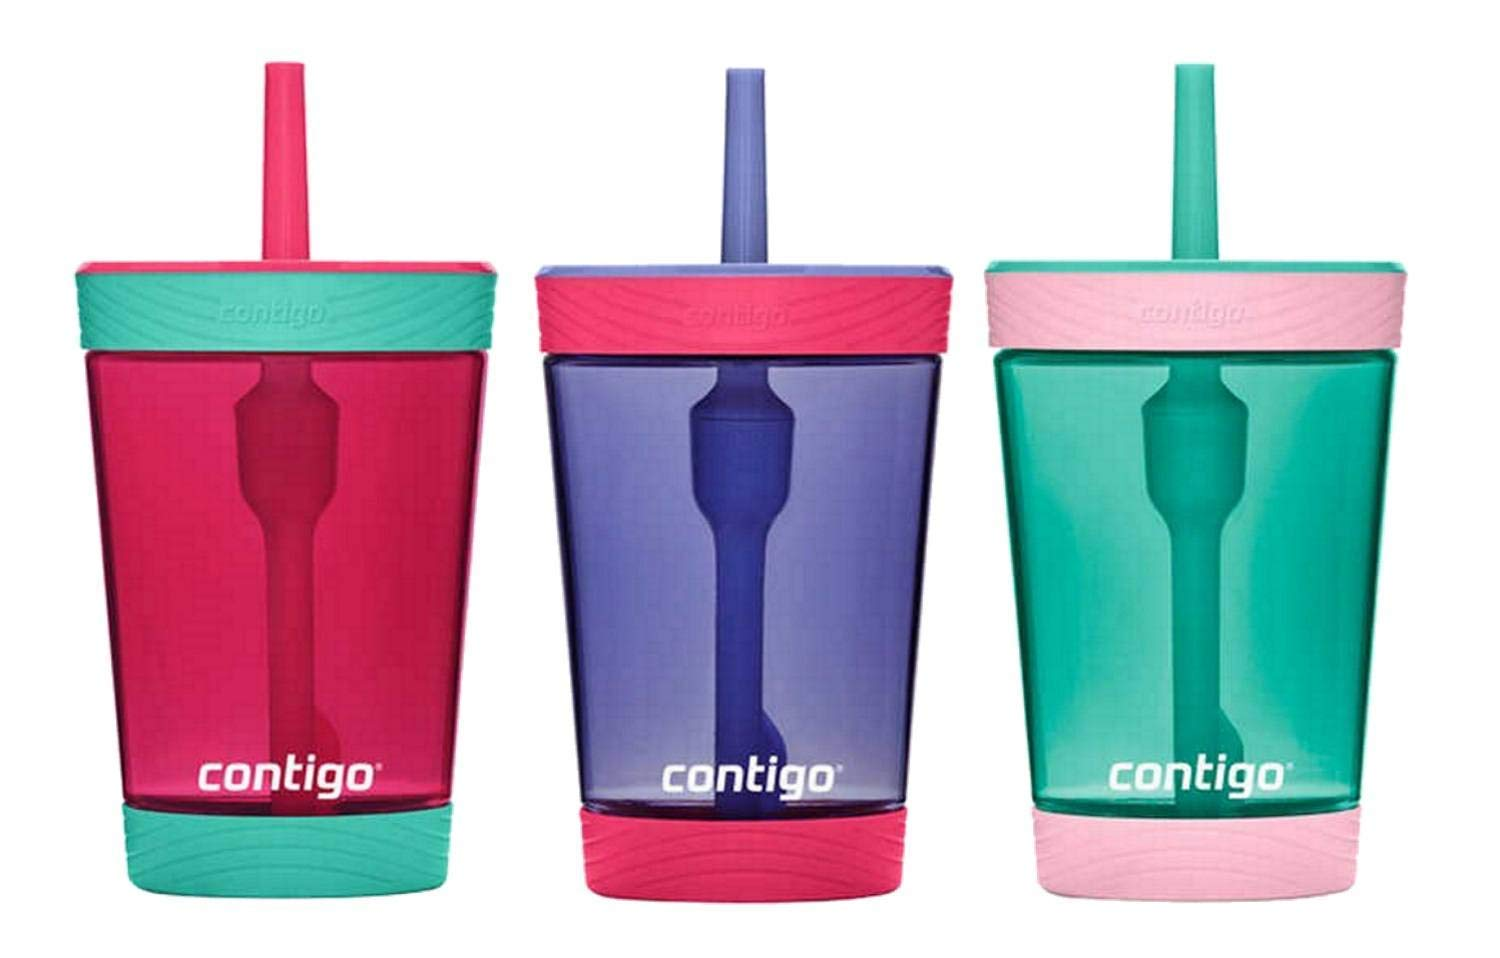 Contigo Kids 3 Pack Tumblers - Pink/Purple/Aqua (Red Purple Green) by Contigo